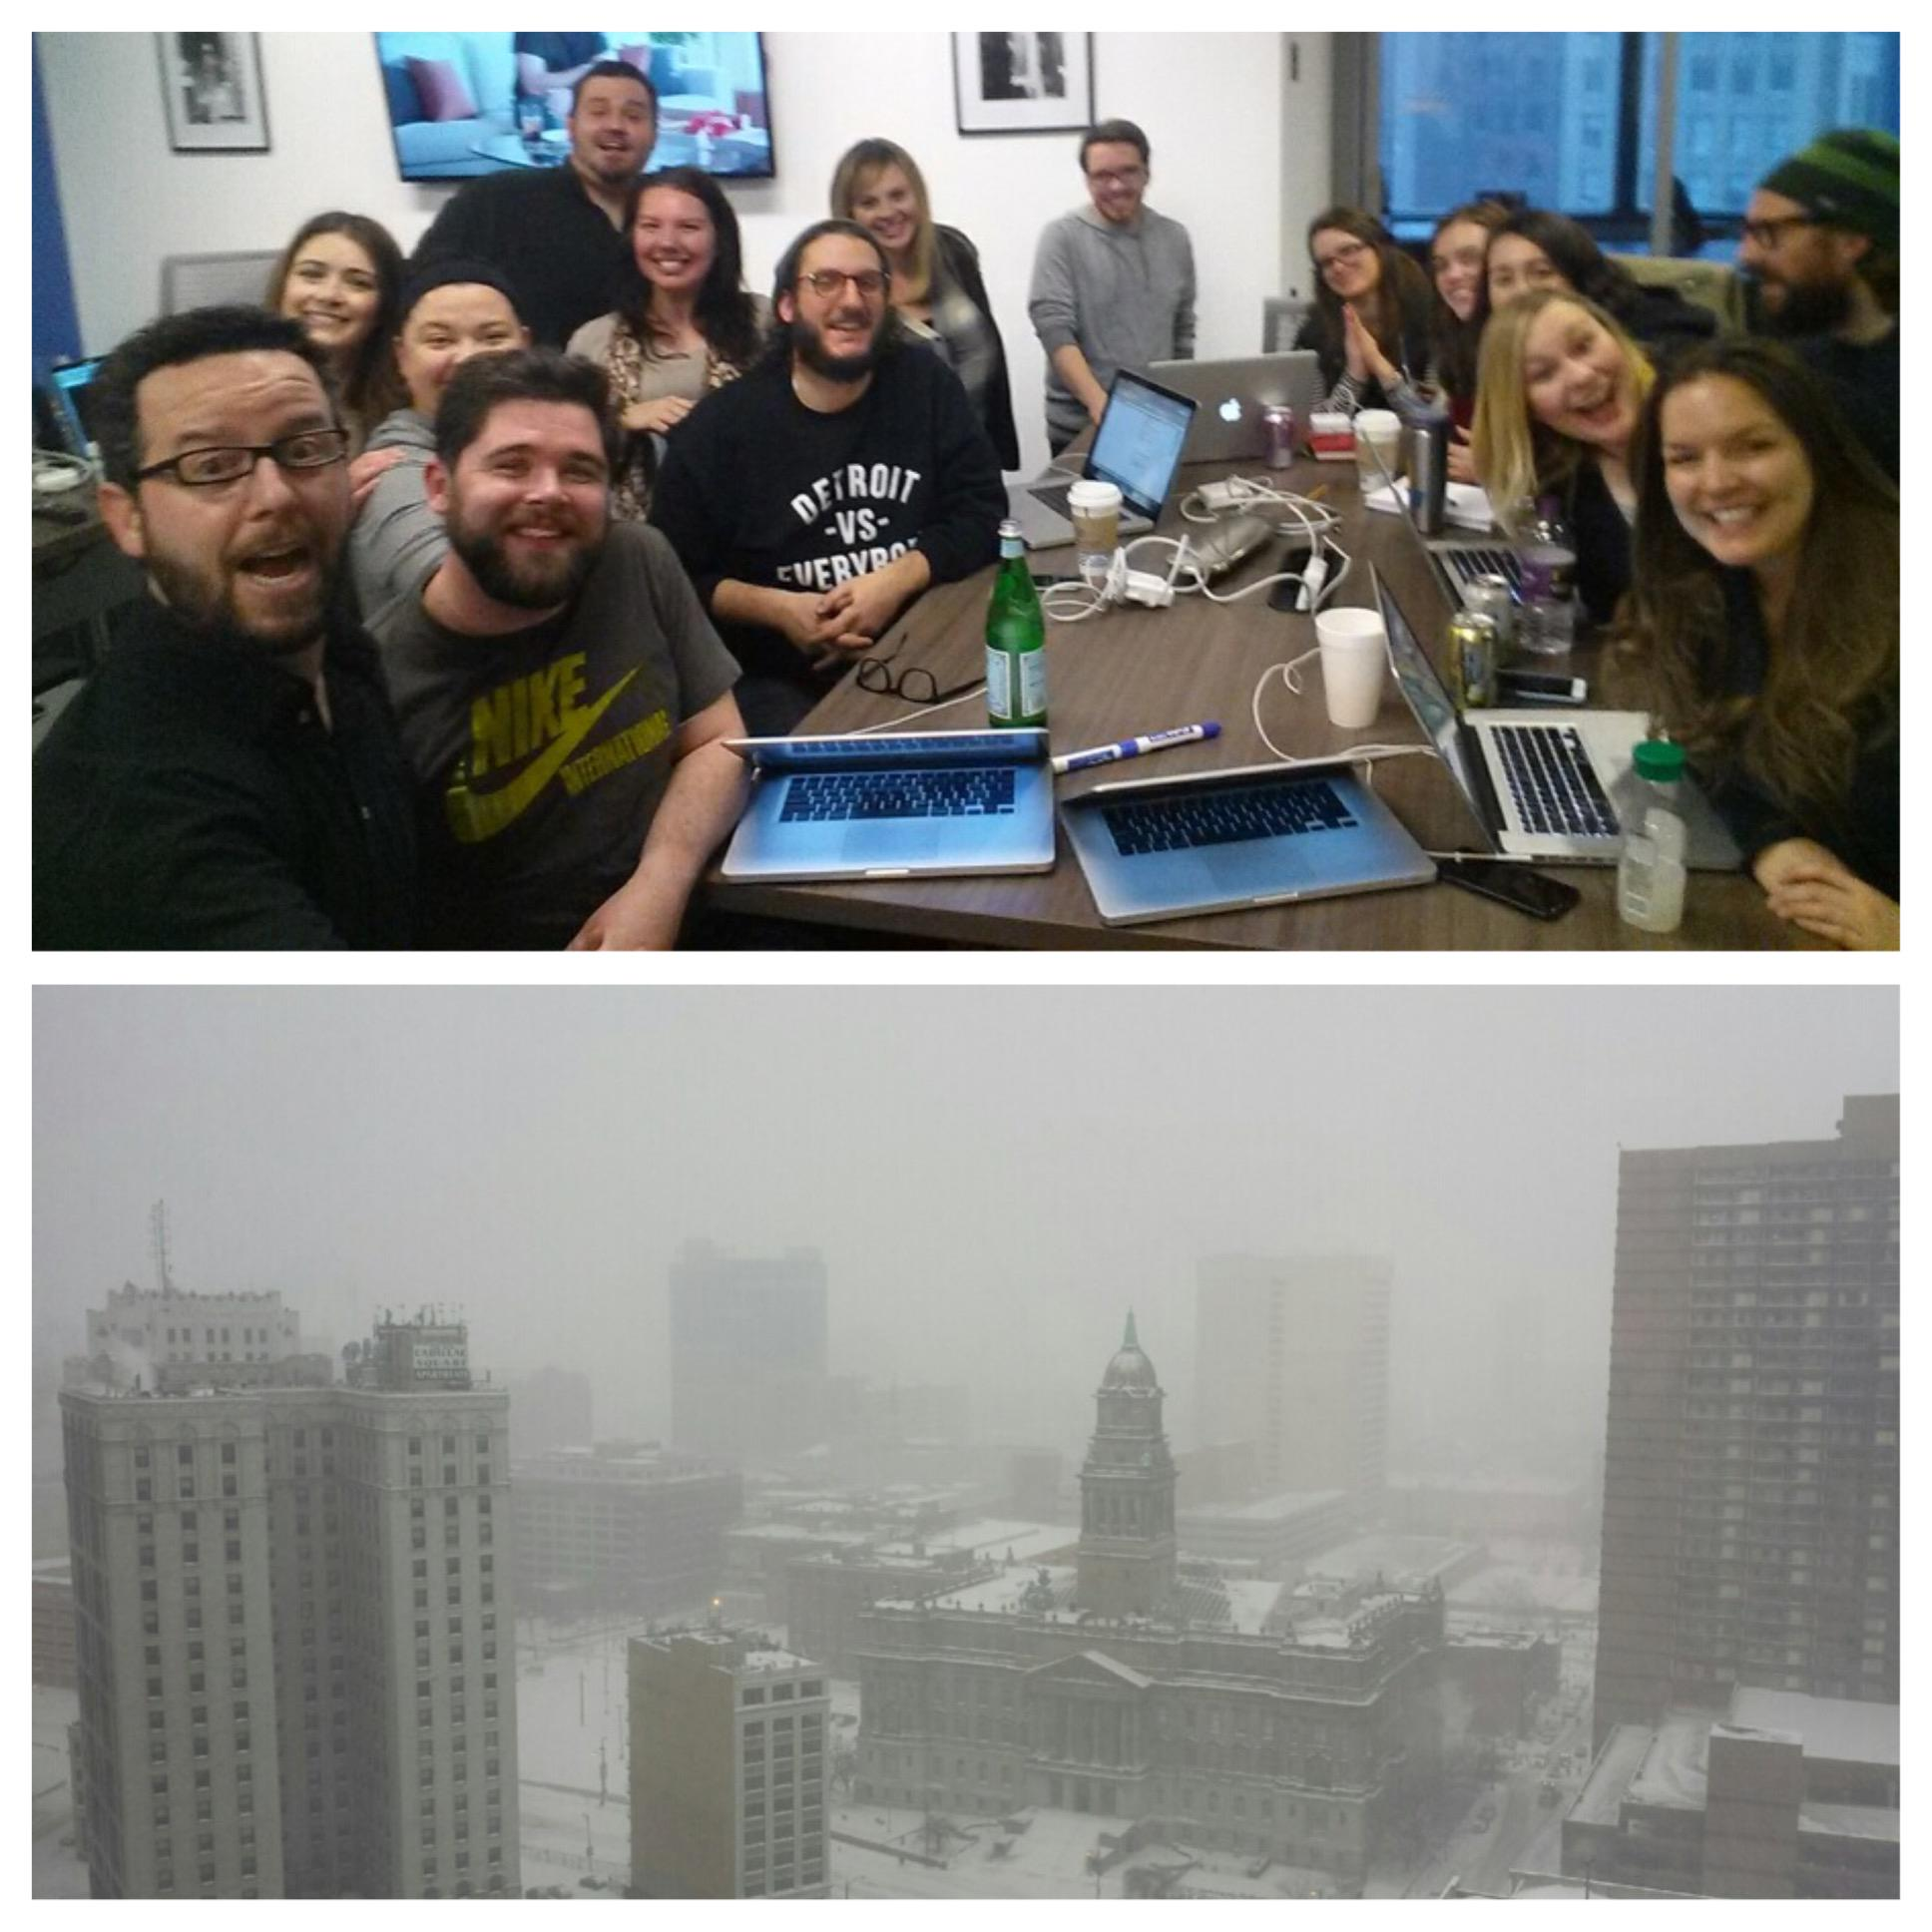 RT @jamerslb: @adage There's #snow place like #Detroit. @Chevrolet social media war room here! #SB49 http://t.co/L6LTkEXj61